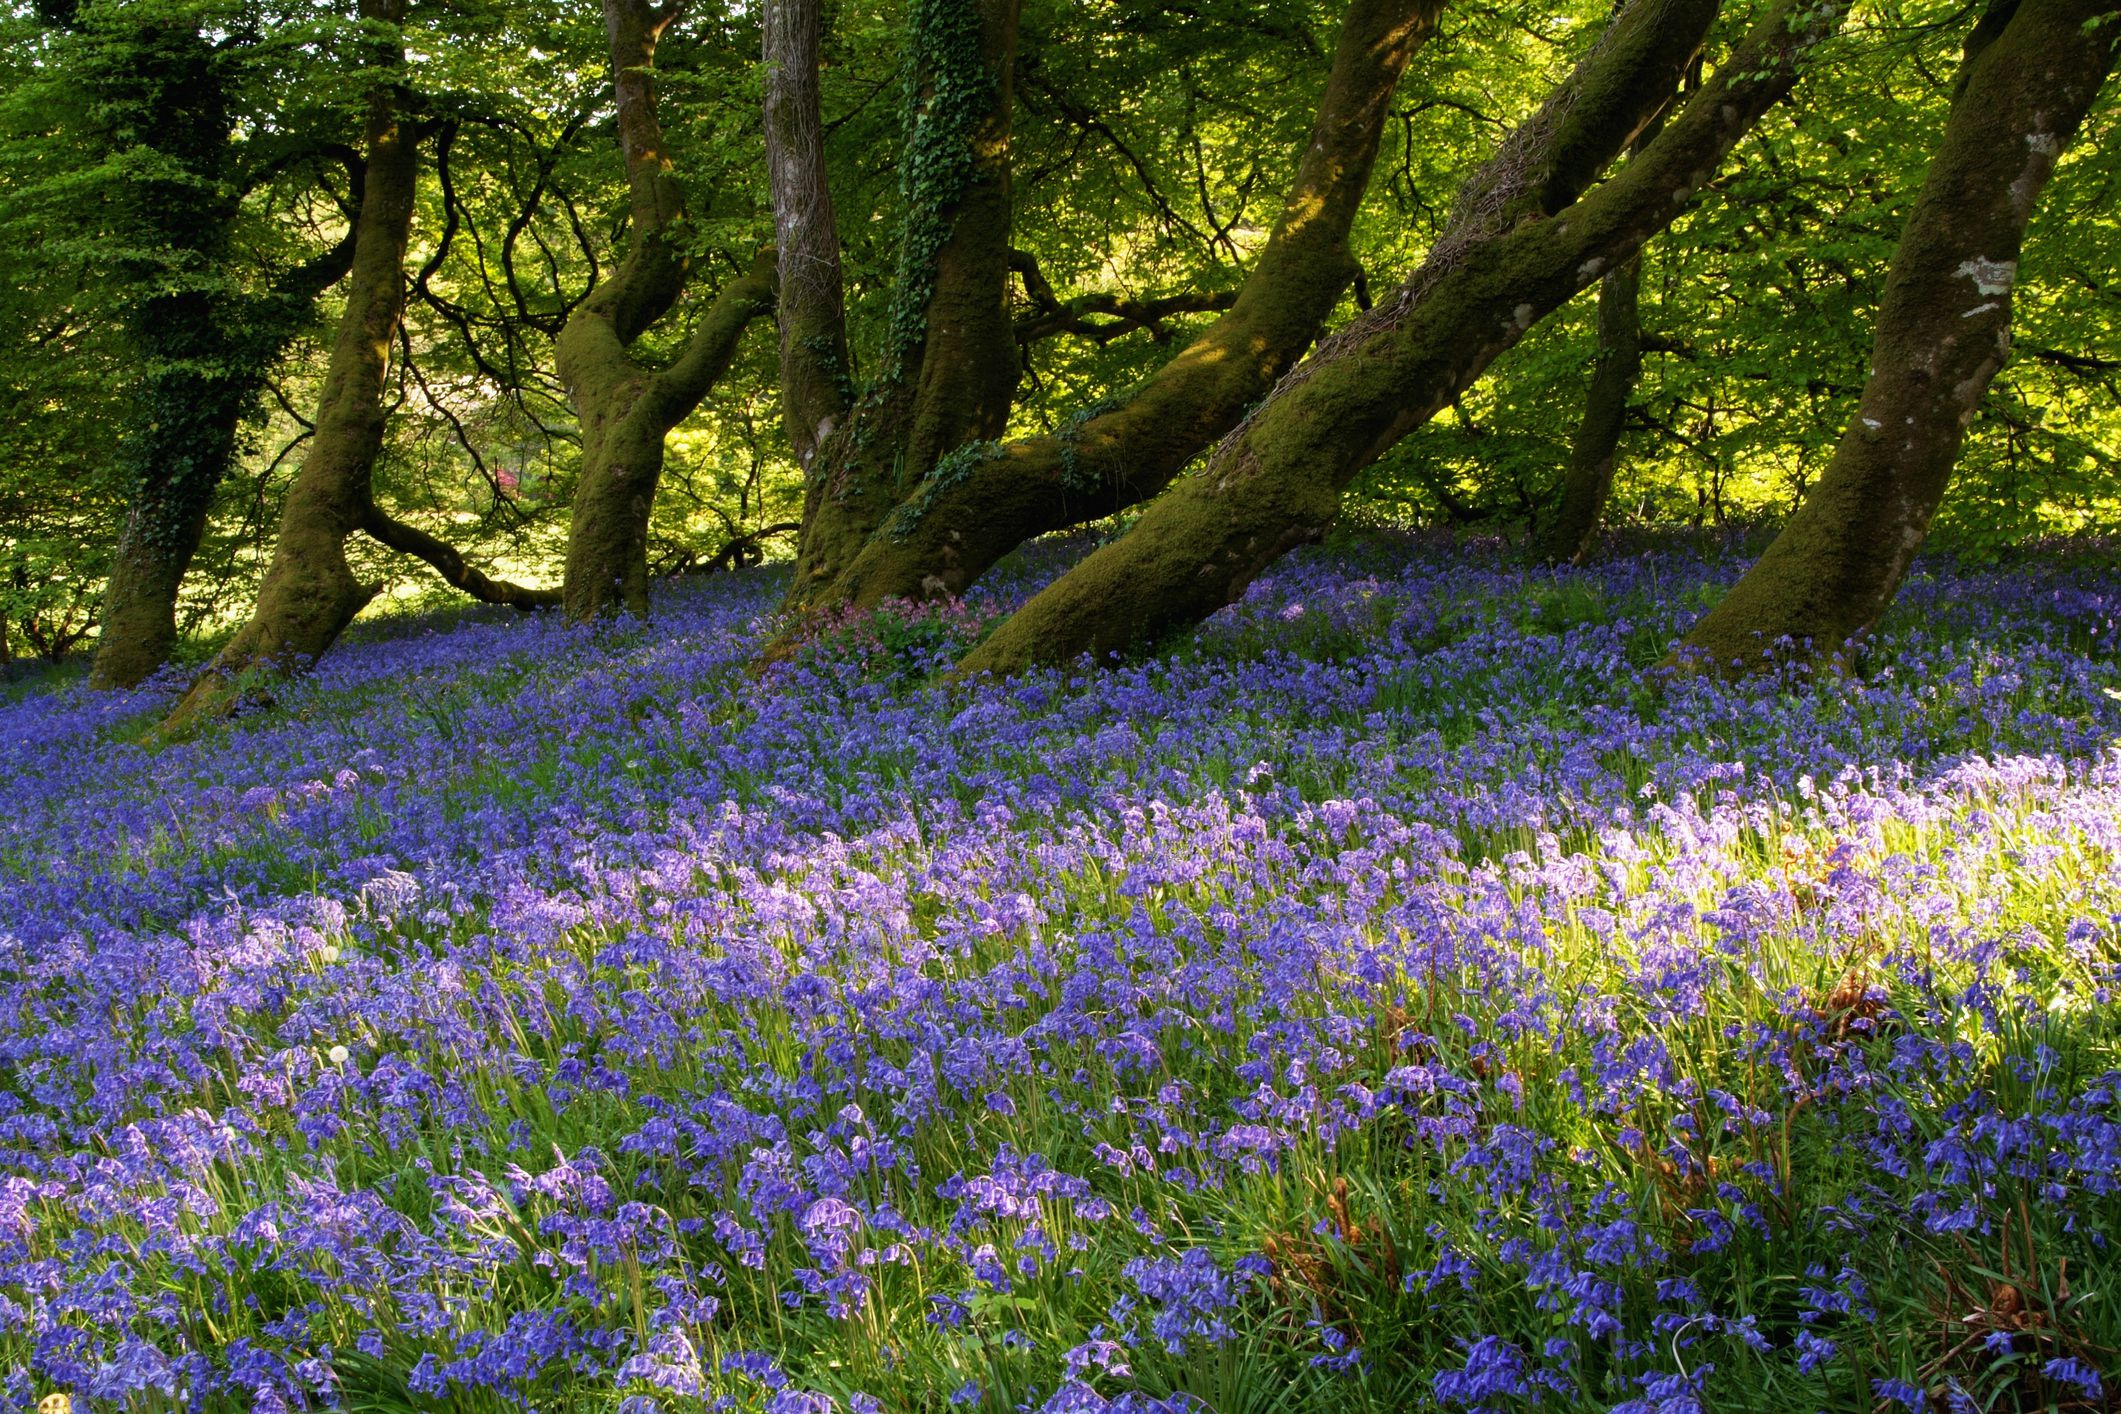 Mount Congreve Gardens in bloom with purple flowers near the City of Waterford